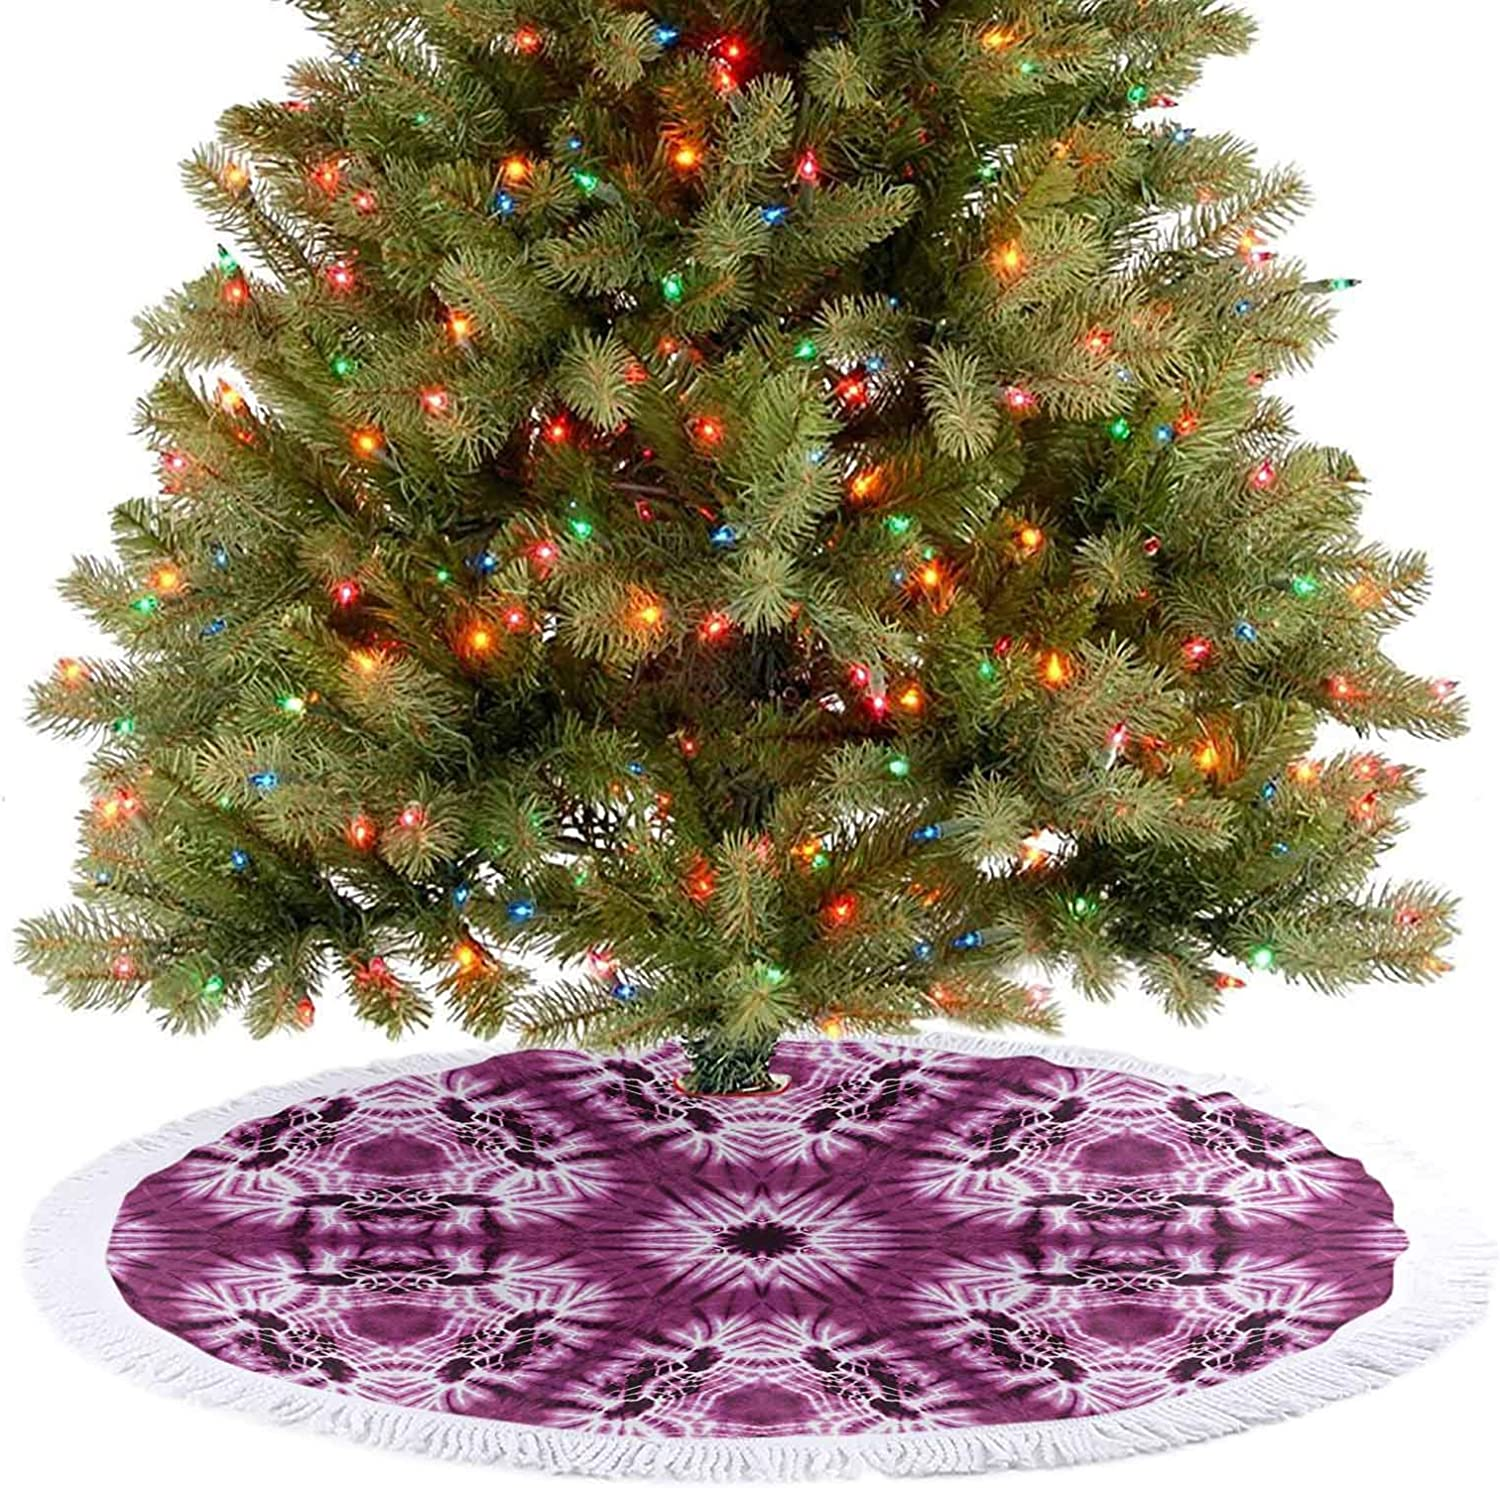 Adorise Christmas Tree Skirt Indonesian Oriental Trippy Motive with Morphing Spotted Murky Shapes Image Fuchsia Holiday Decor Ornaments Cozy and Festive Without Being Cheesy - 36 Inch